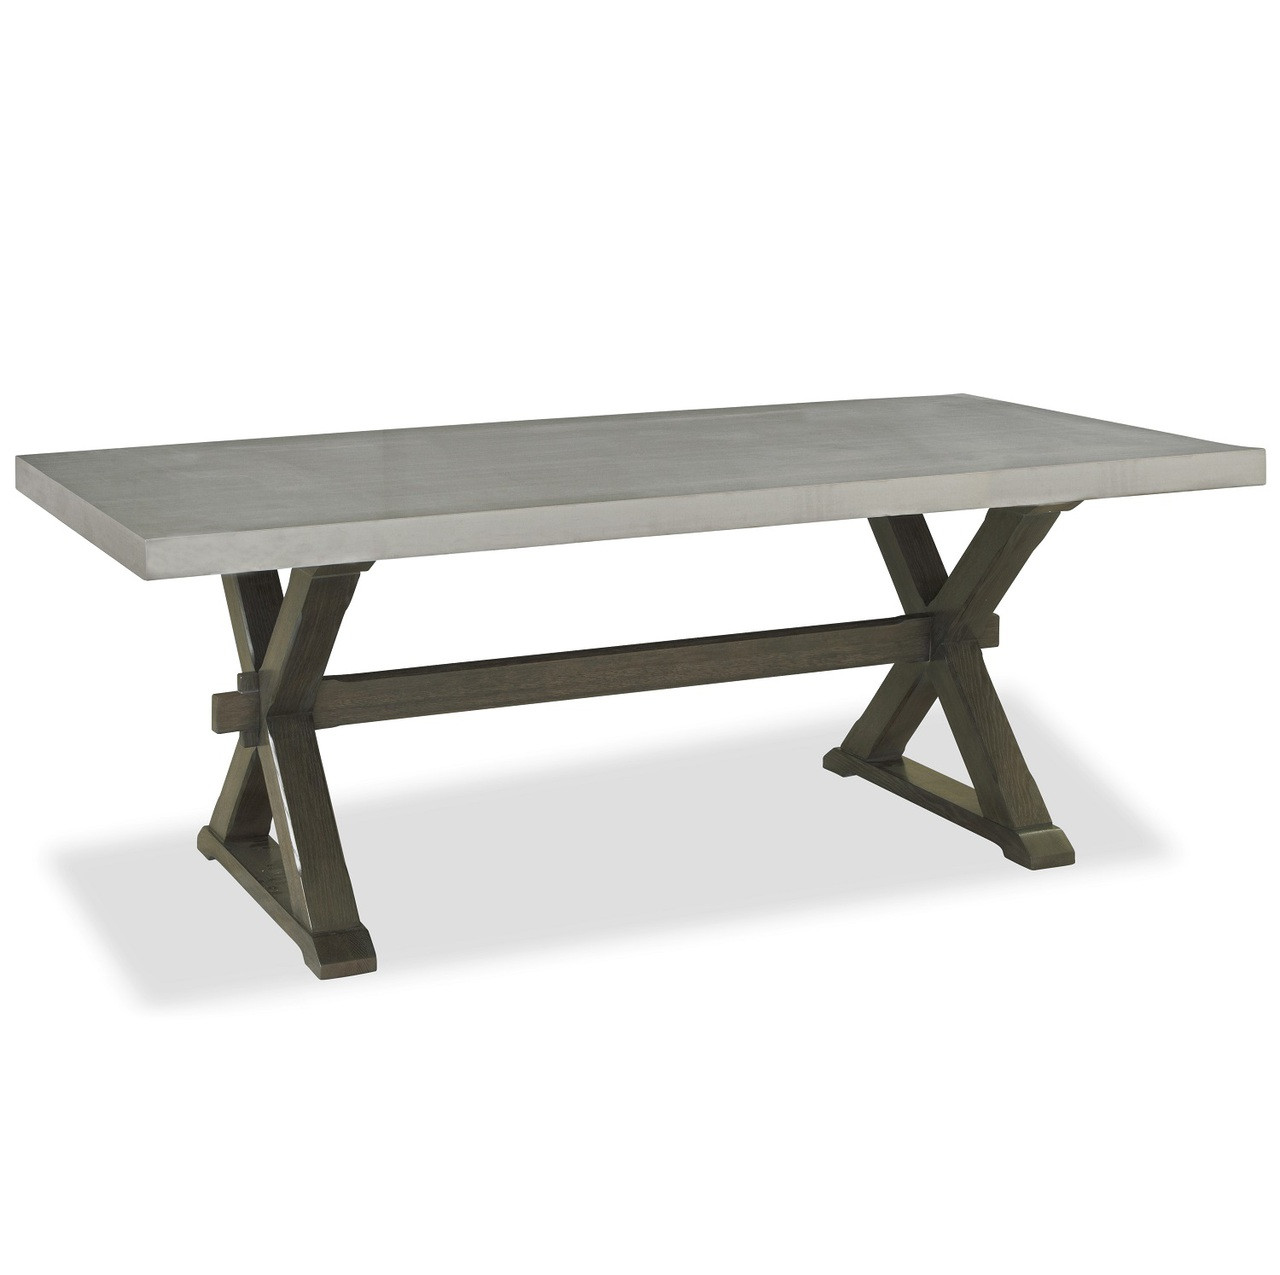 Superb img of  Room Tables Flatiron Oak Wood   Stainless Steel X Base Dining Table with #585143 color and 1280x1275 pixels